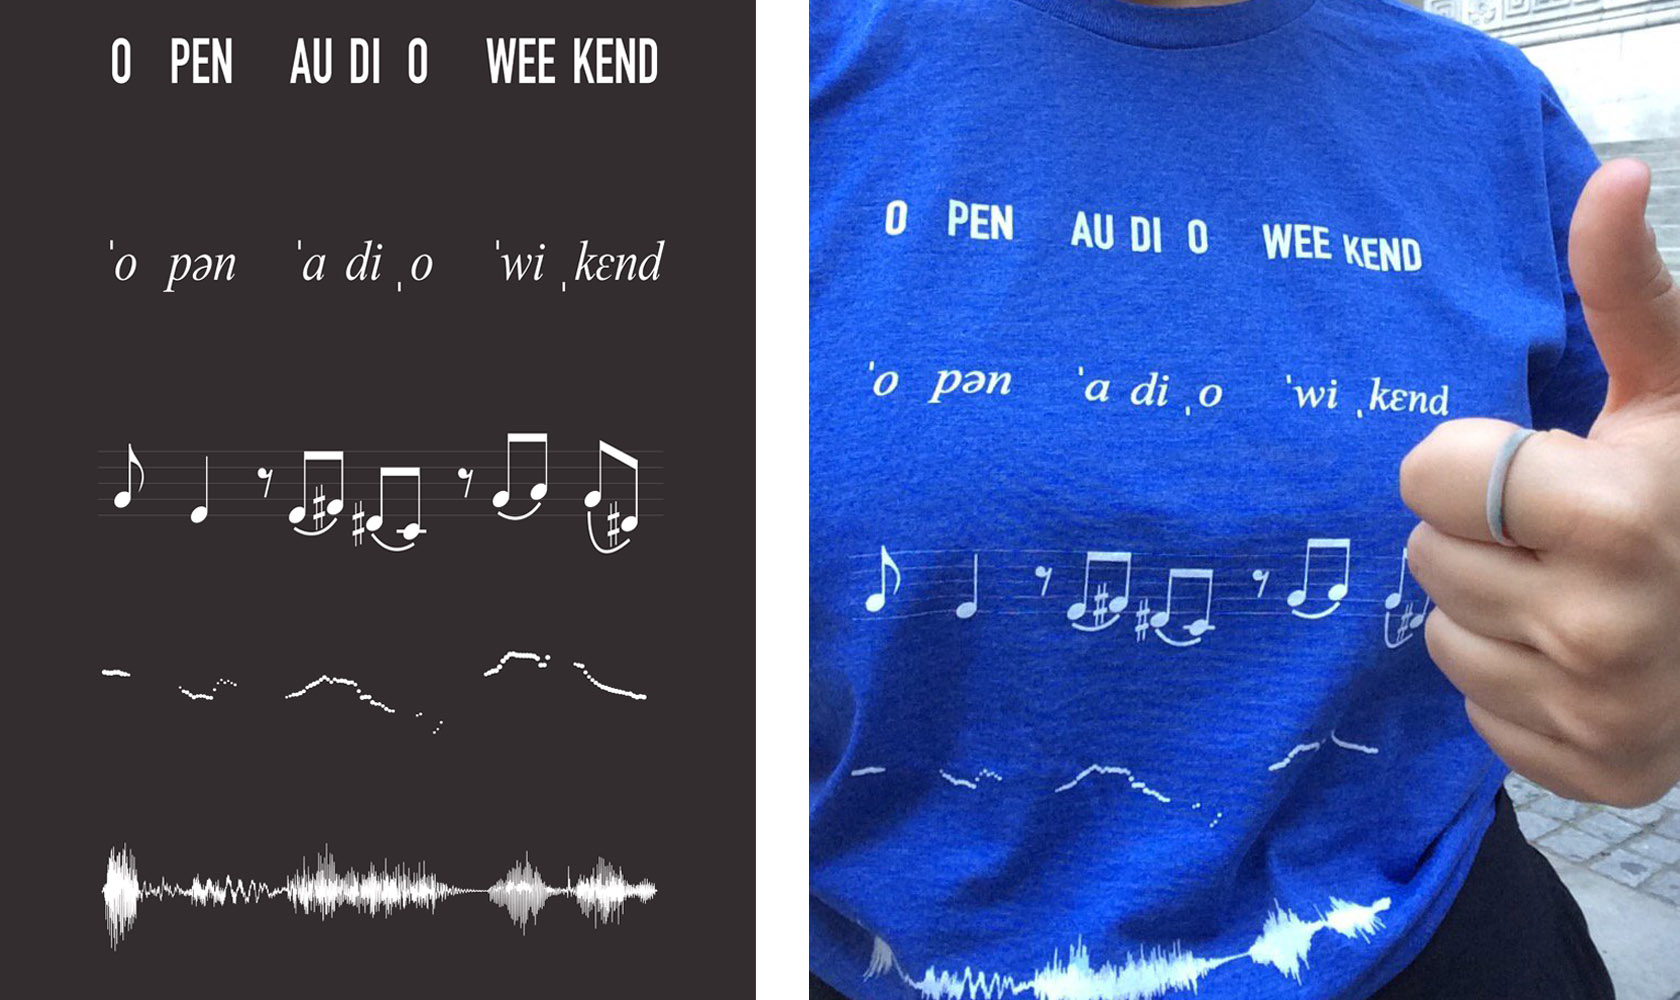 Open Audio Weekend T Shirt Design